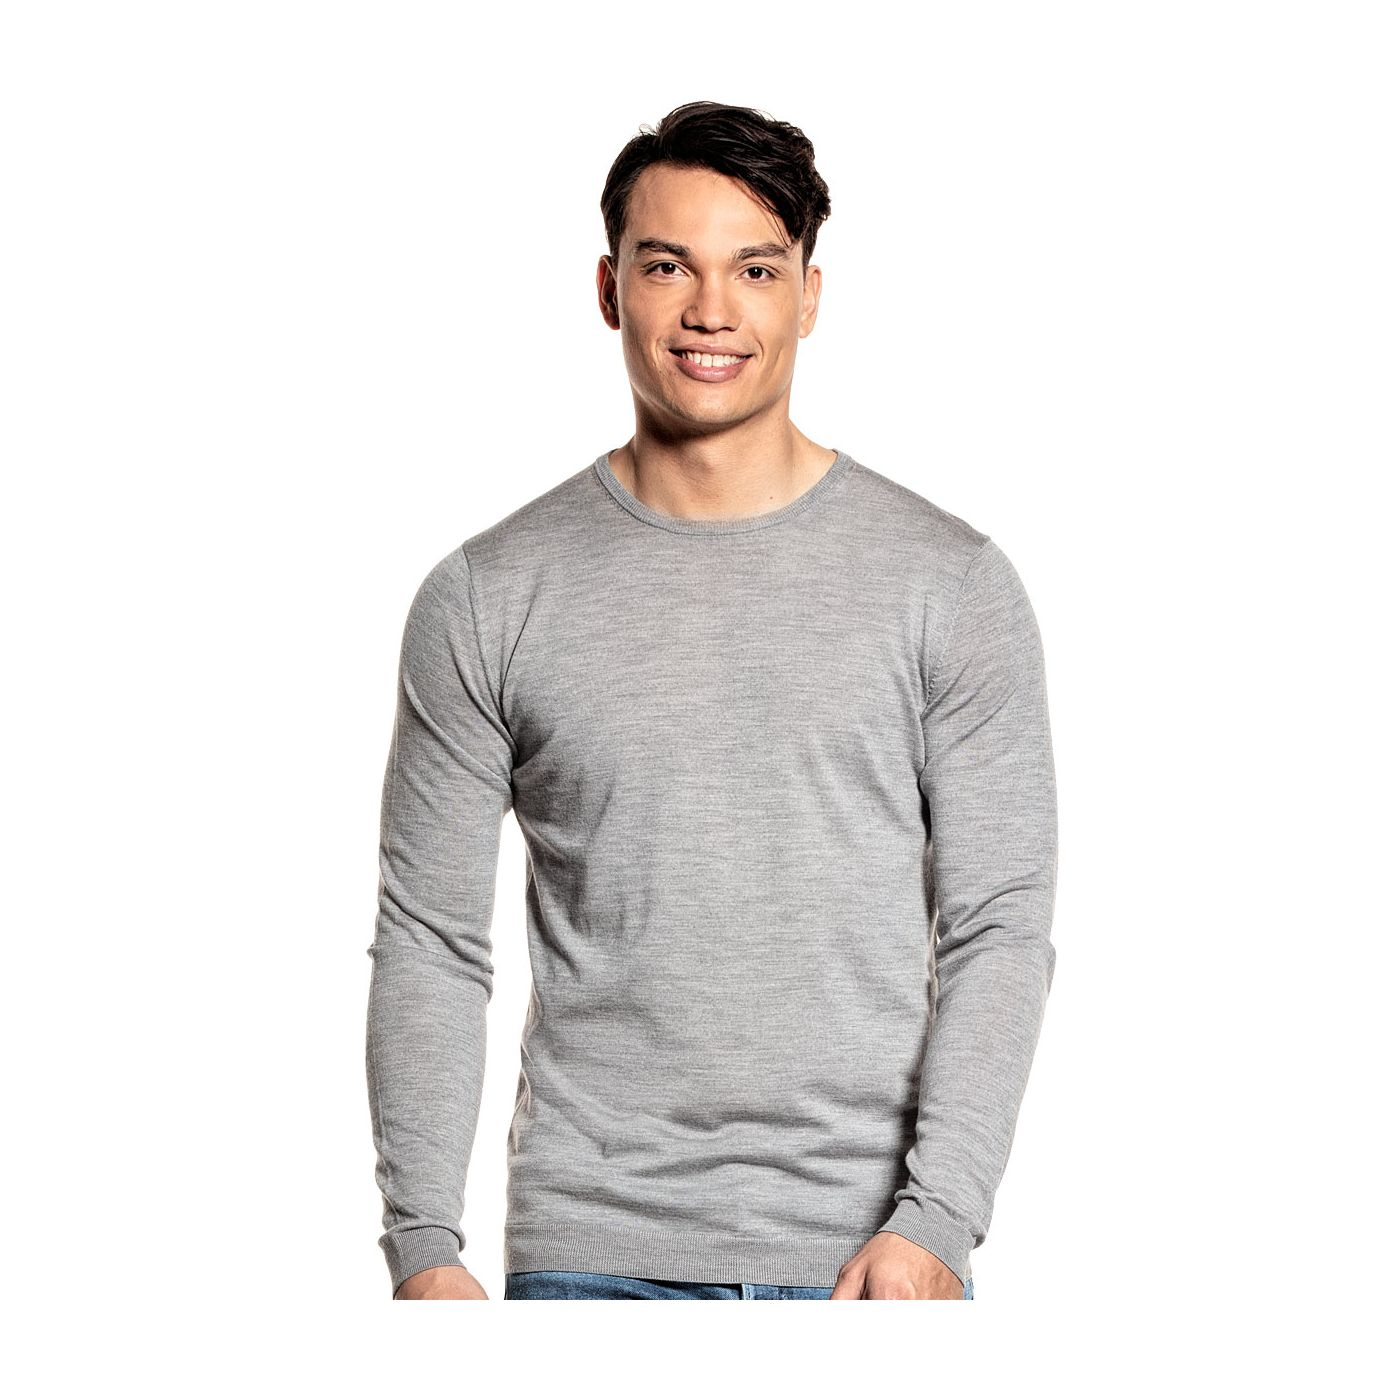 Extra long crew neck sweater for men made of Merino wool in Grey